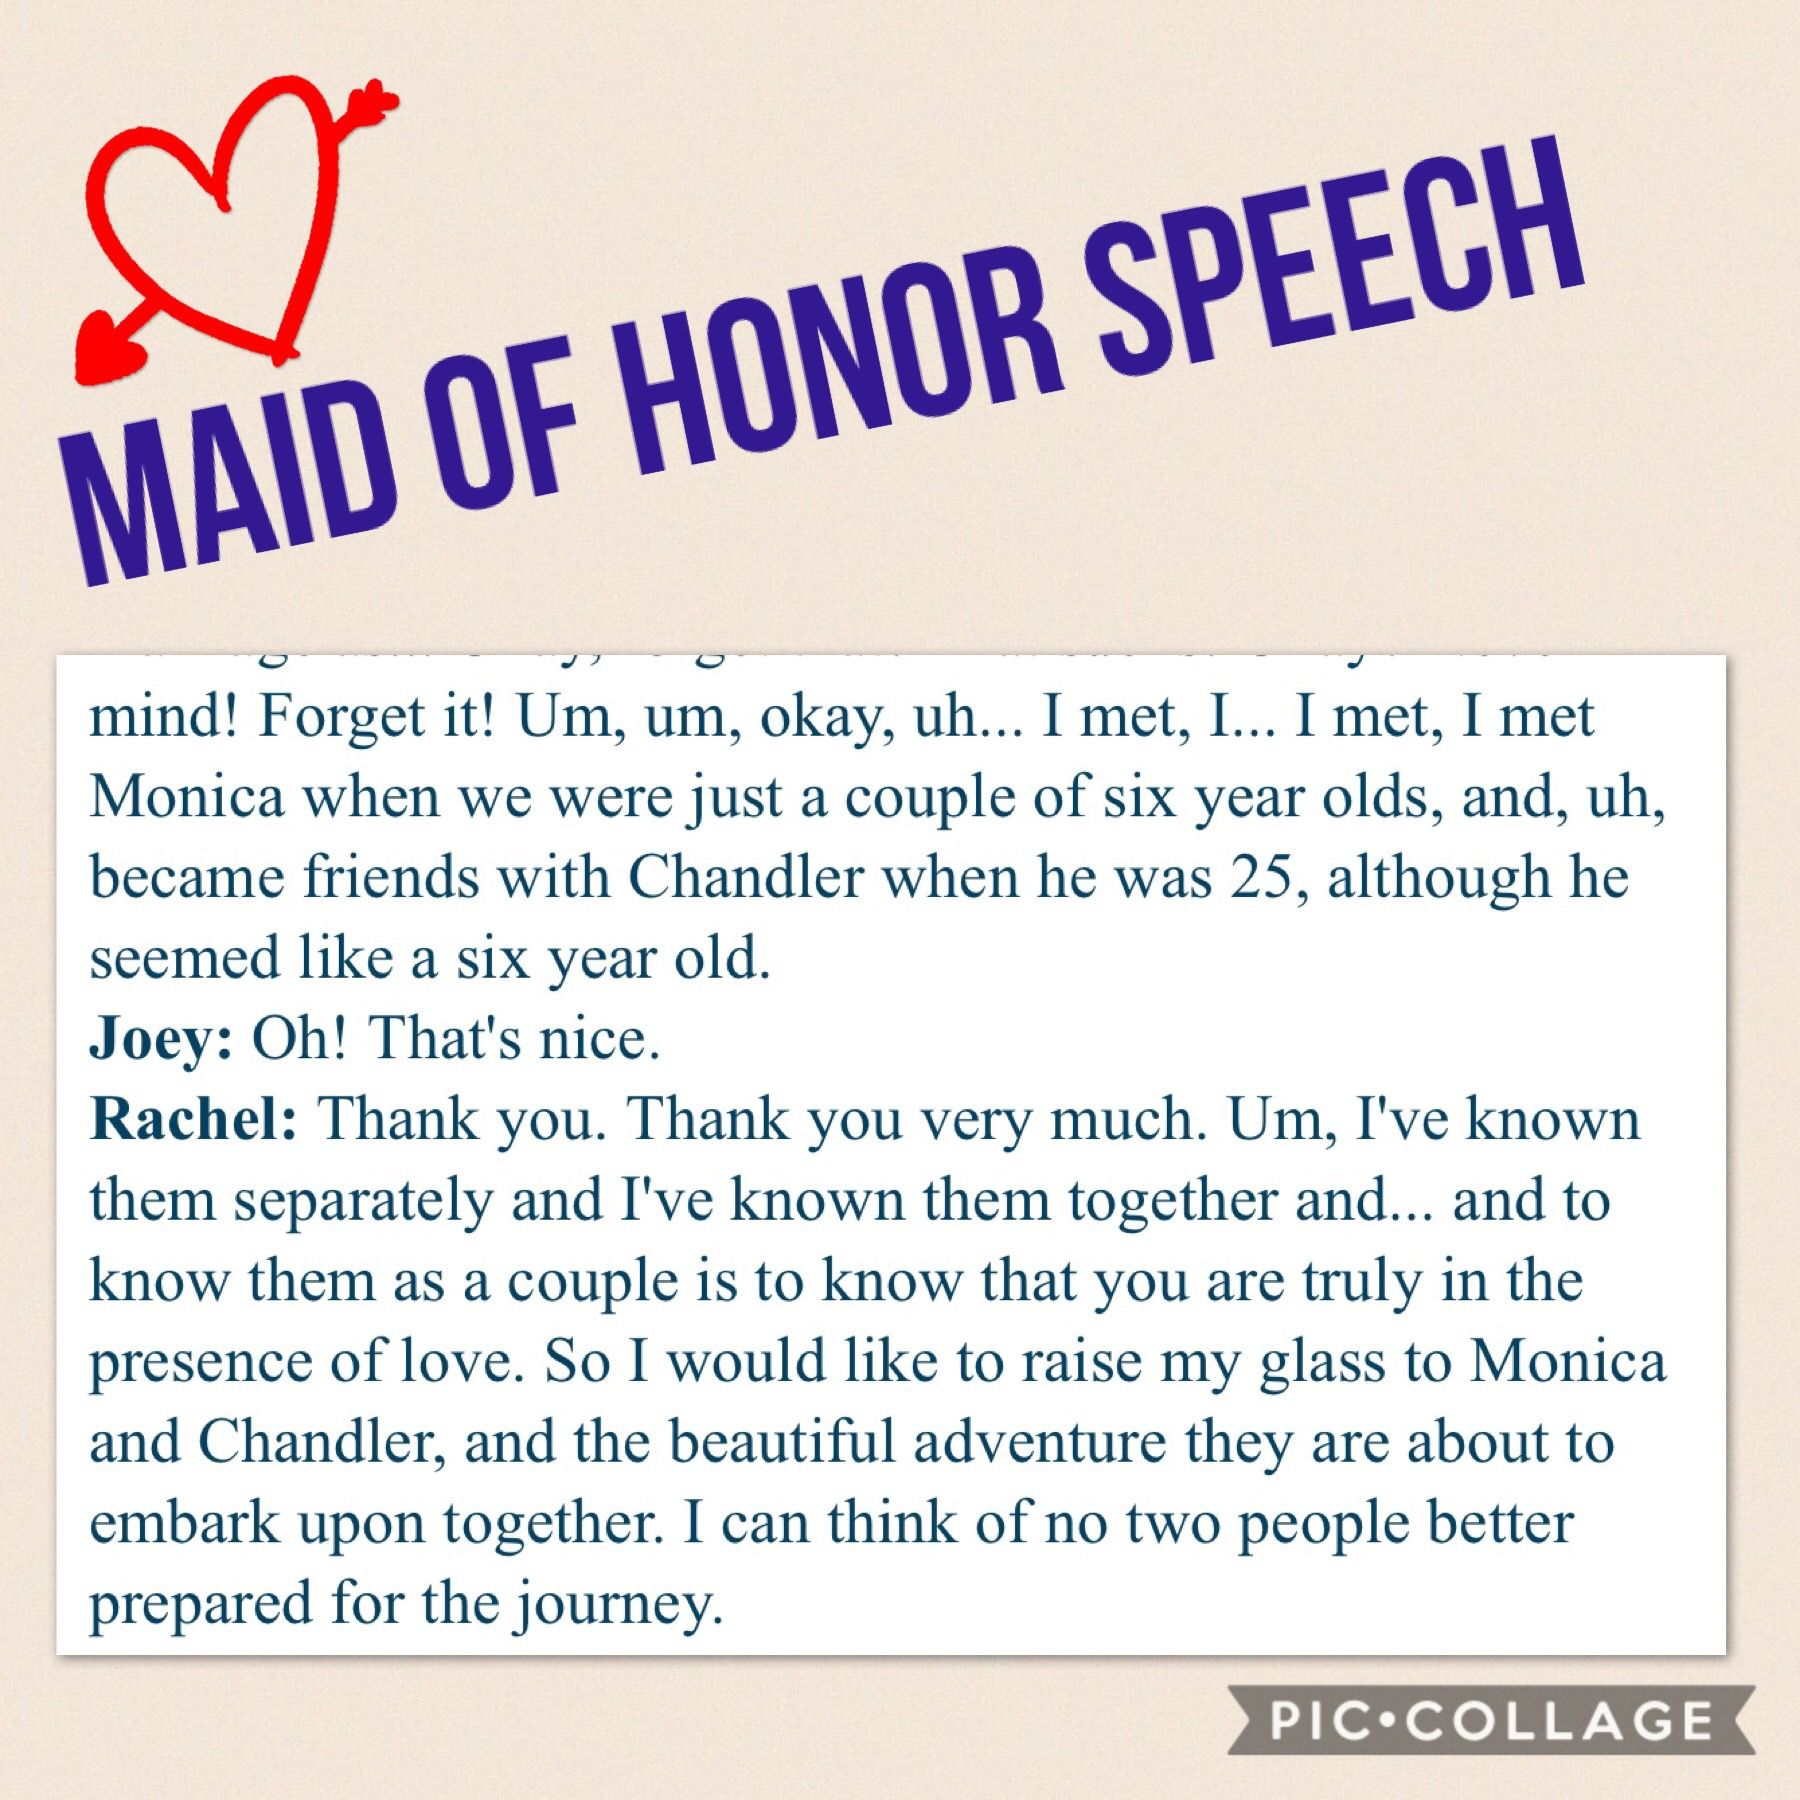 Maid of honor speech from Friends | Maid of honor speech